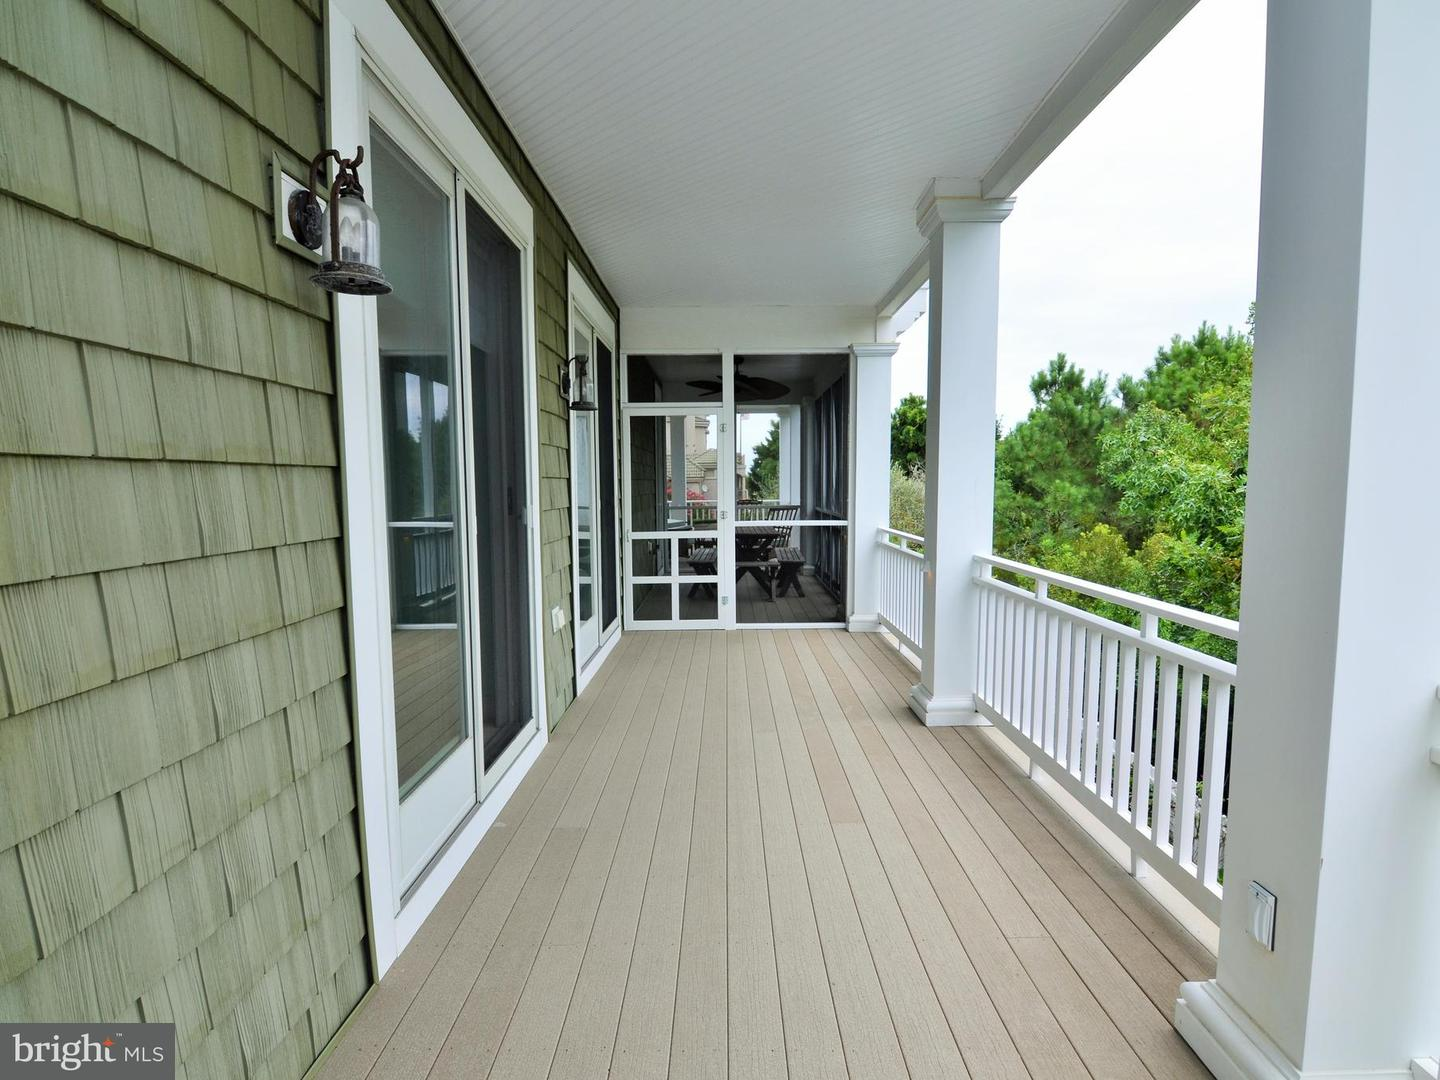 1002293530-300500808401-2018-09-25-15-08-25 31 Hall Ave | Rehoboth Beach, DE Real Estate For Sale | MLS# 1002293530  - 1st Choice Properties